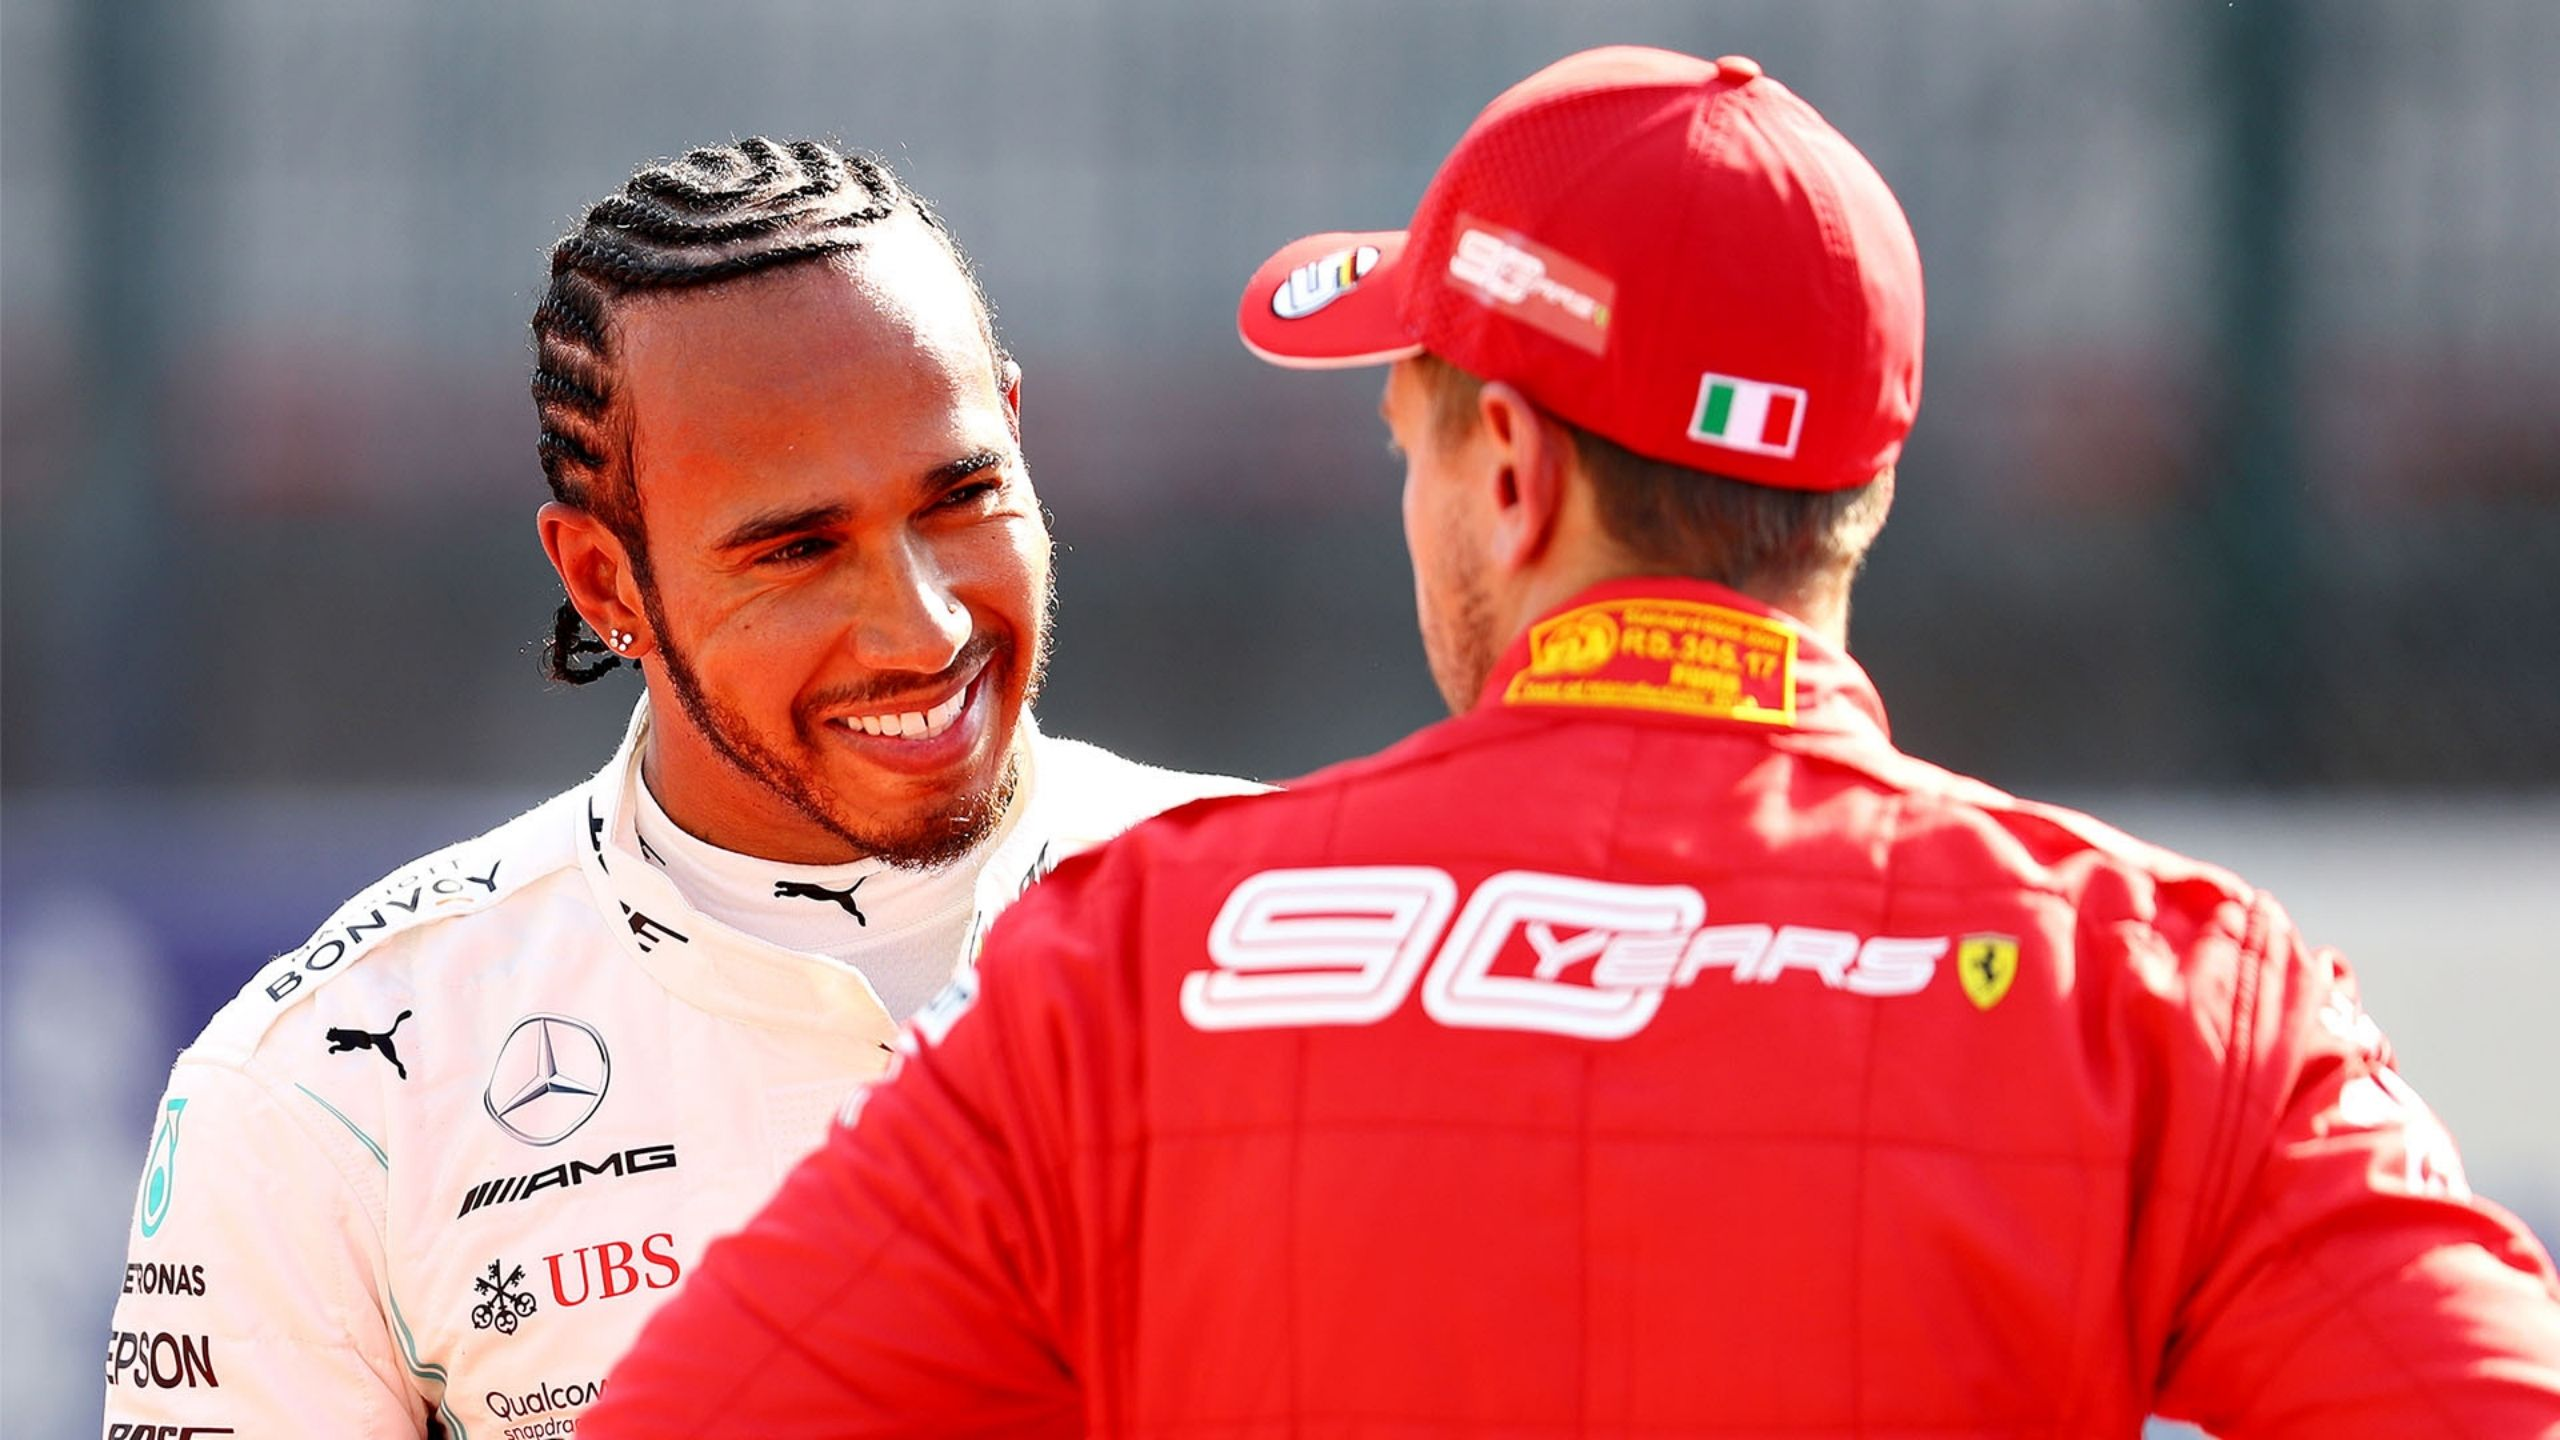 F1 Driver Salary: Is a pay cut to Lewis Hamilton justified? The arguments for and against it